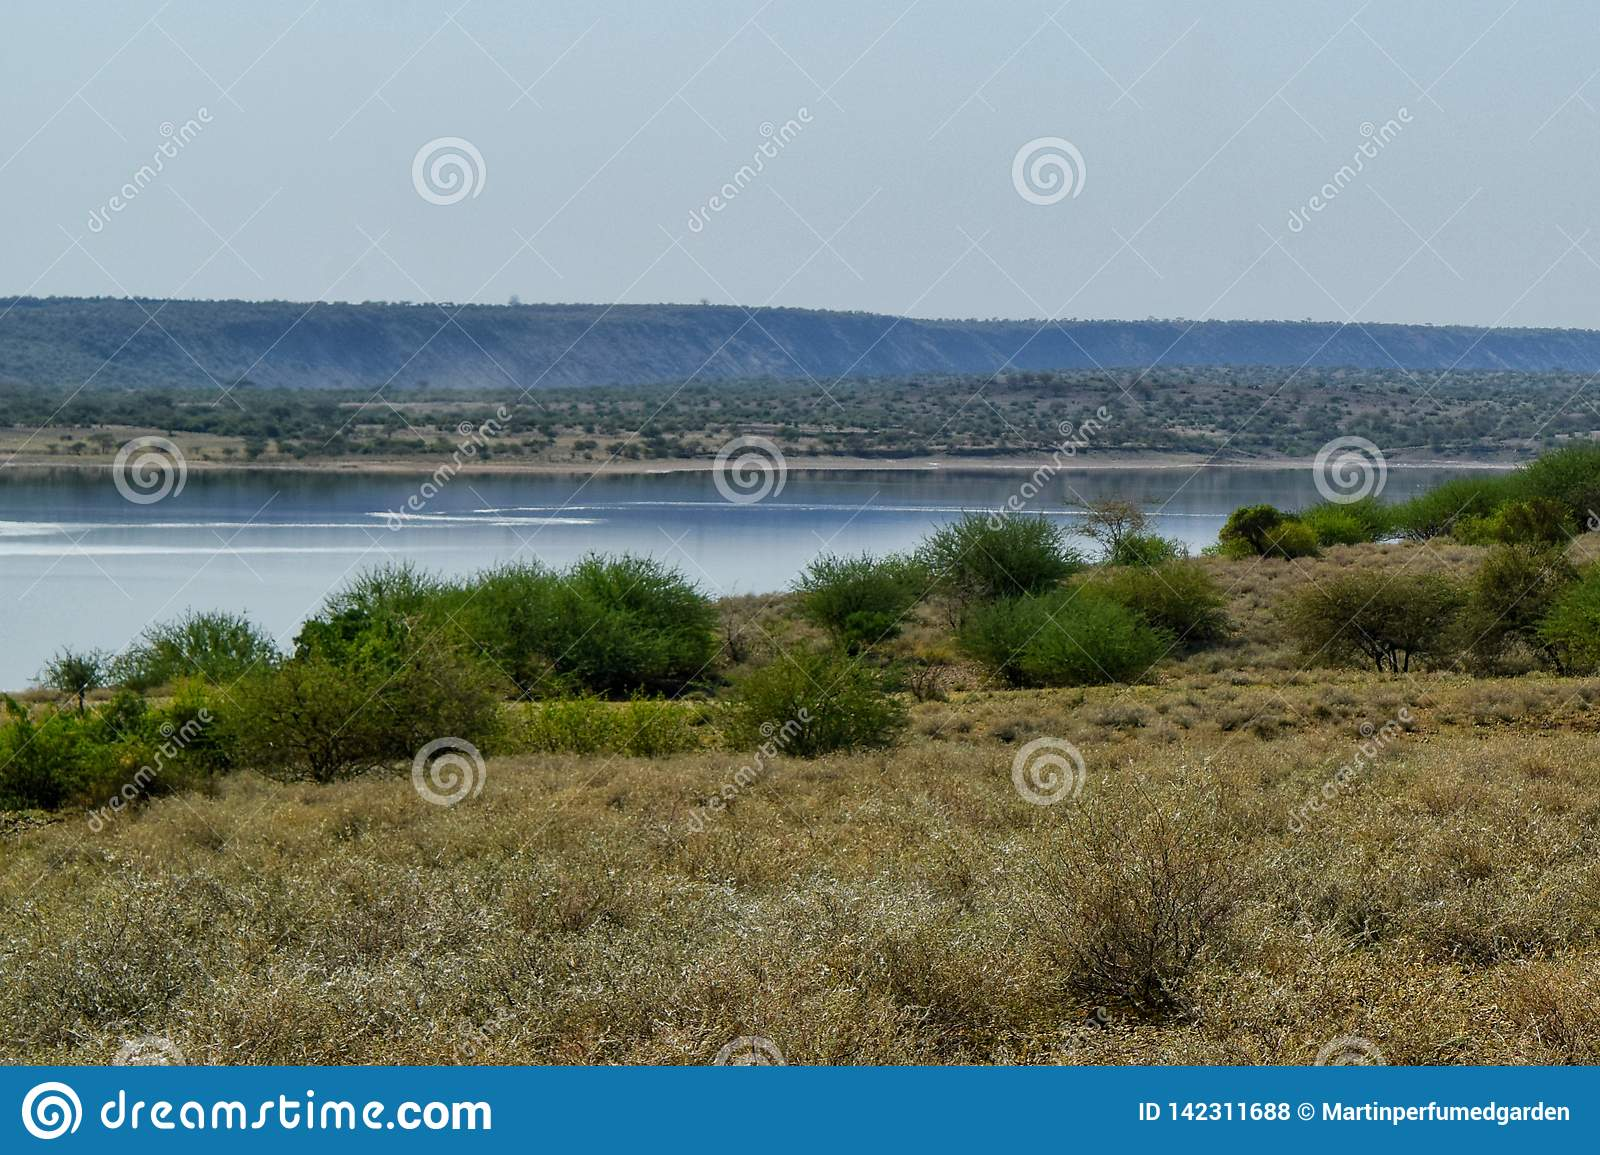 Lake against an arid landscape